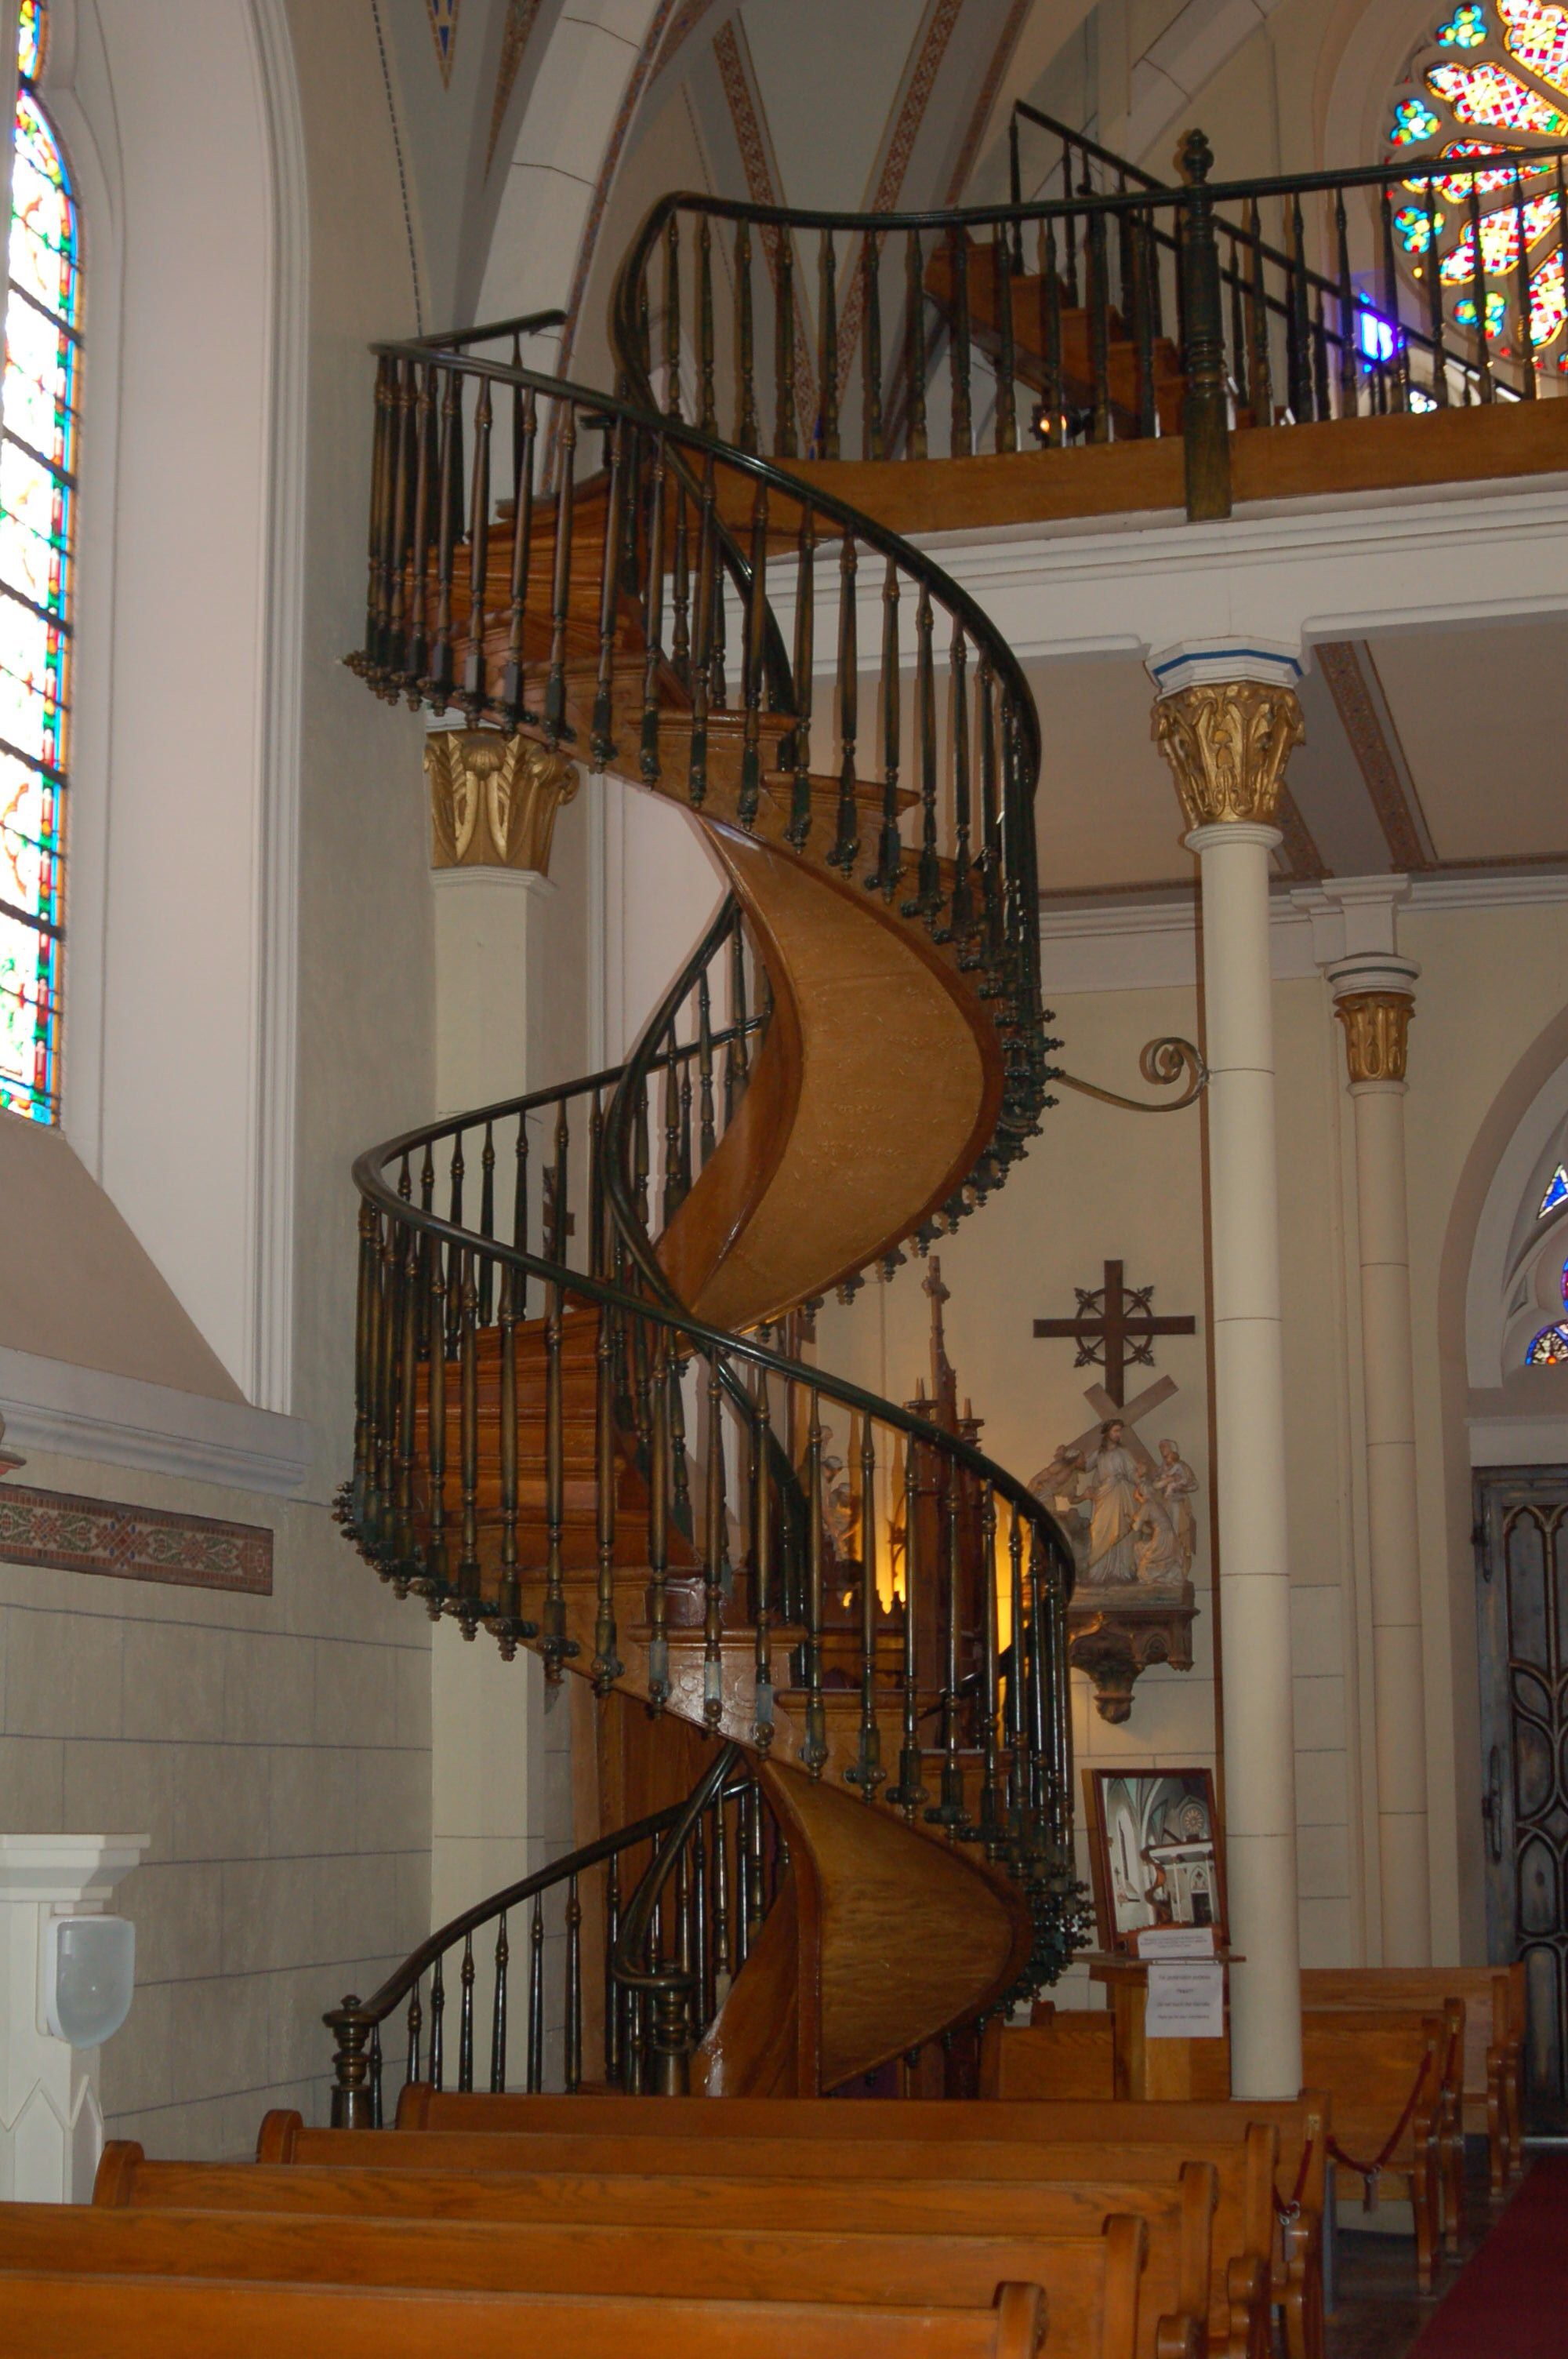 The Miracle Stairs The Famous Loretto Chapel Staircase A Rail | The Staircase Of Loretto Chapel | Original | Light | Weird | Stairway | Magical